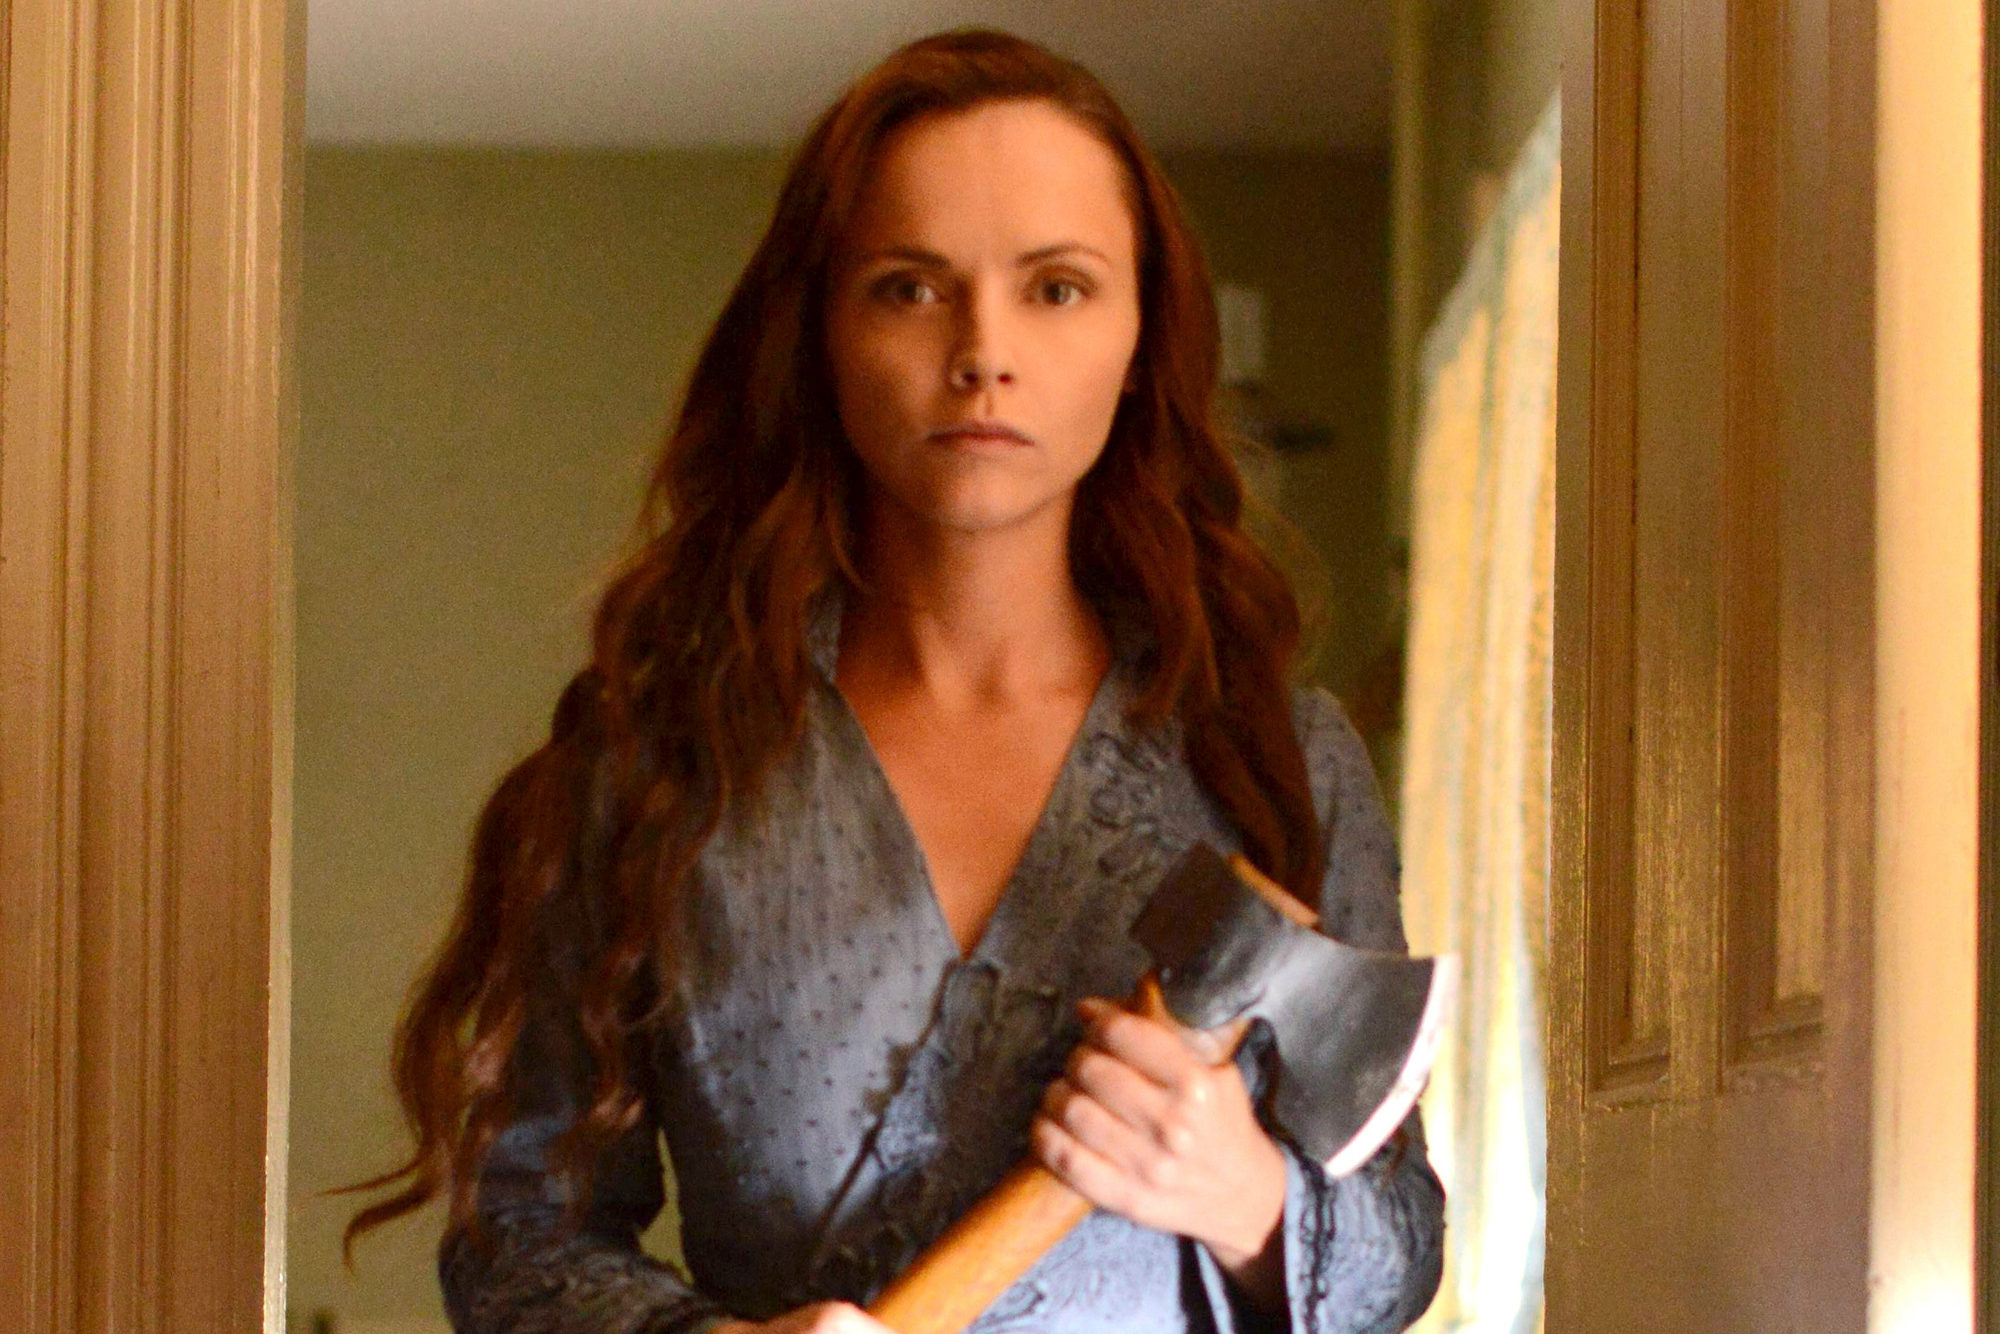 Lizzie Borden Took And Axe additionally Lizzie Borden Took An Ax Film Review additionally Watch moreover By sub category in addition Lizzie borden s revenge M151404. on lizzie borden took an axe